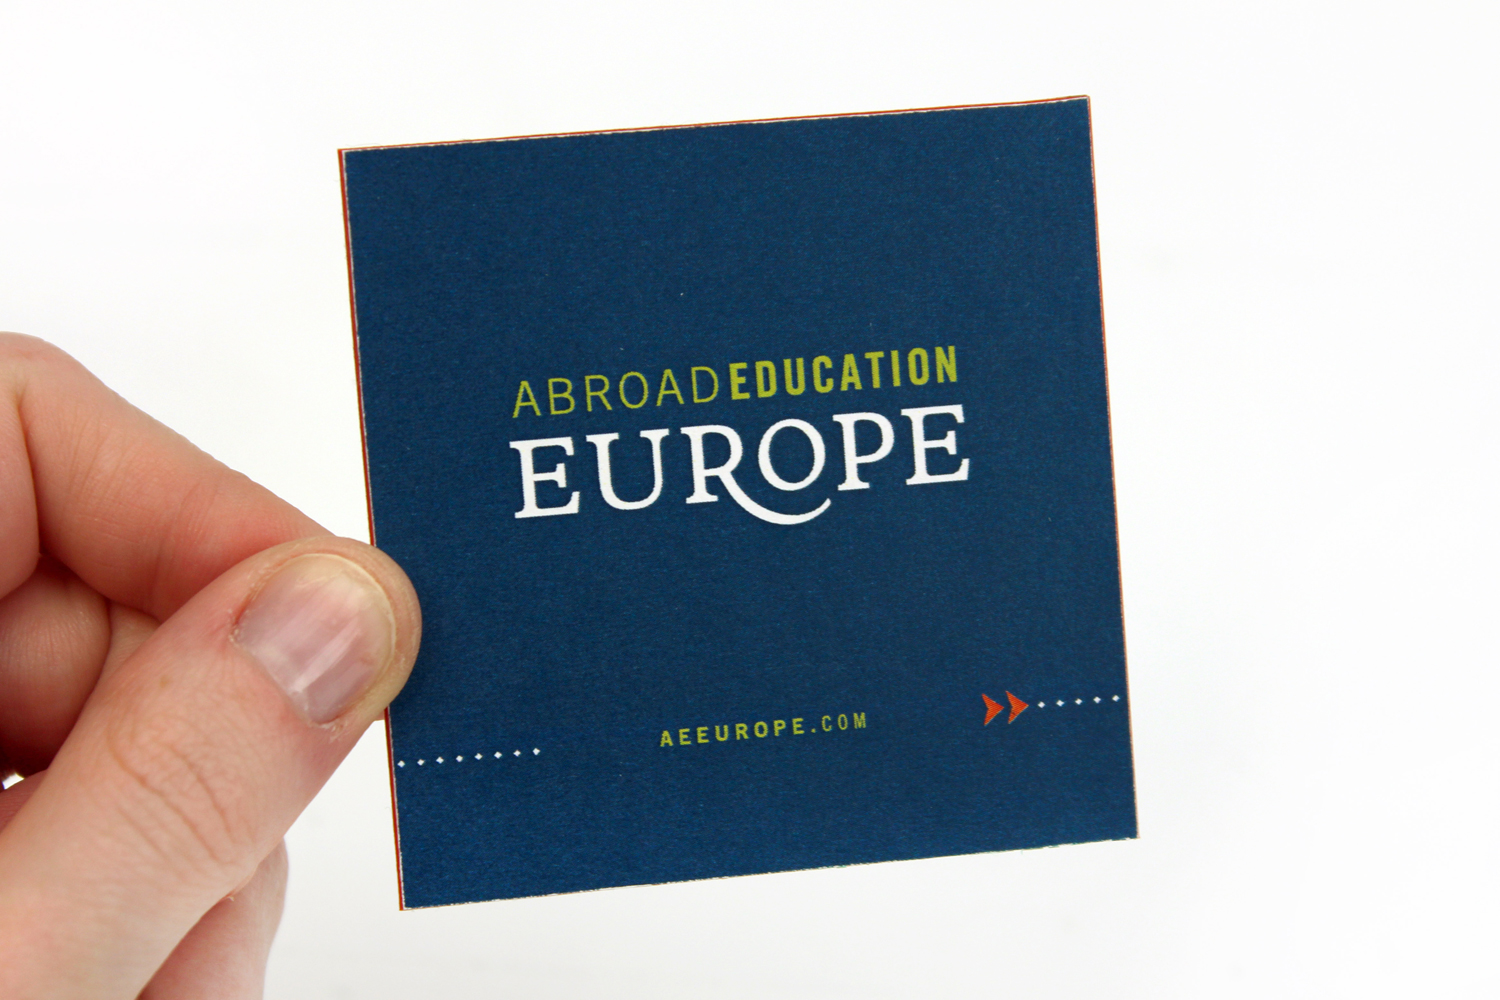 lyc-2017-abroad-education-business-card.jpg